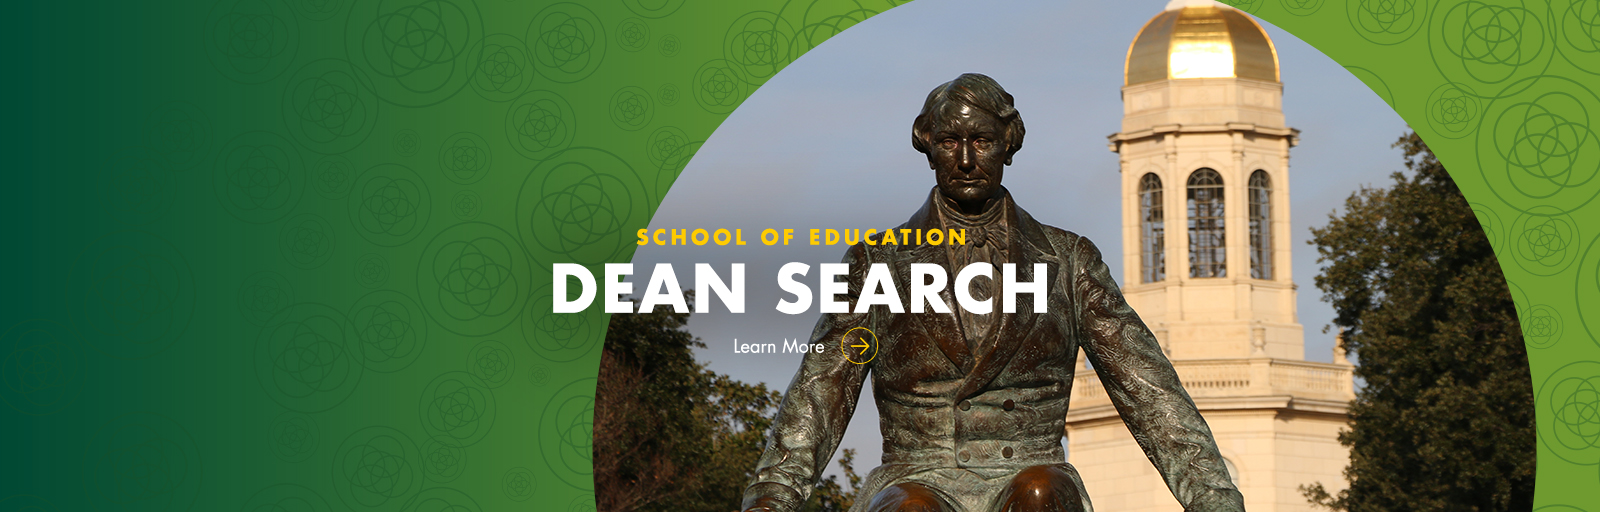 soe-mc_DeanSearch2019-Final